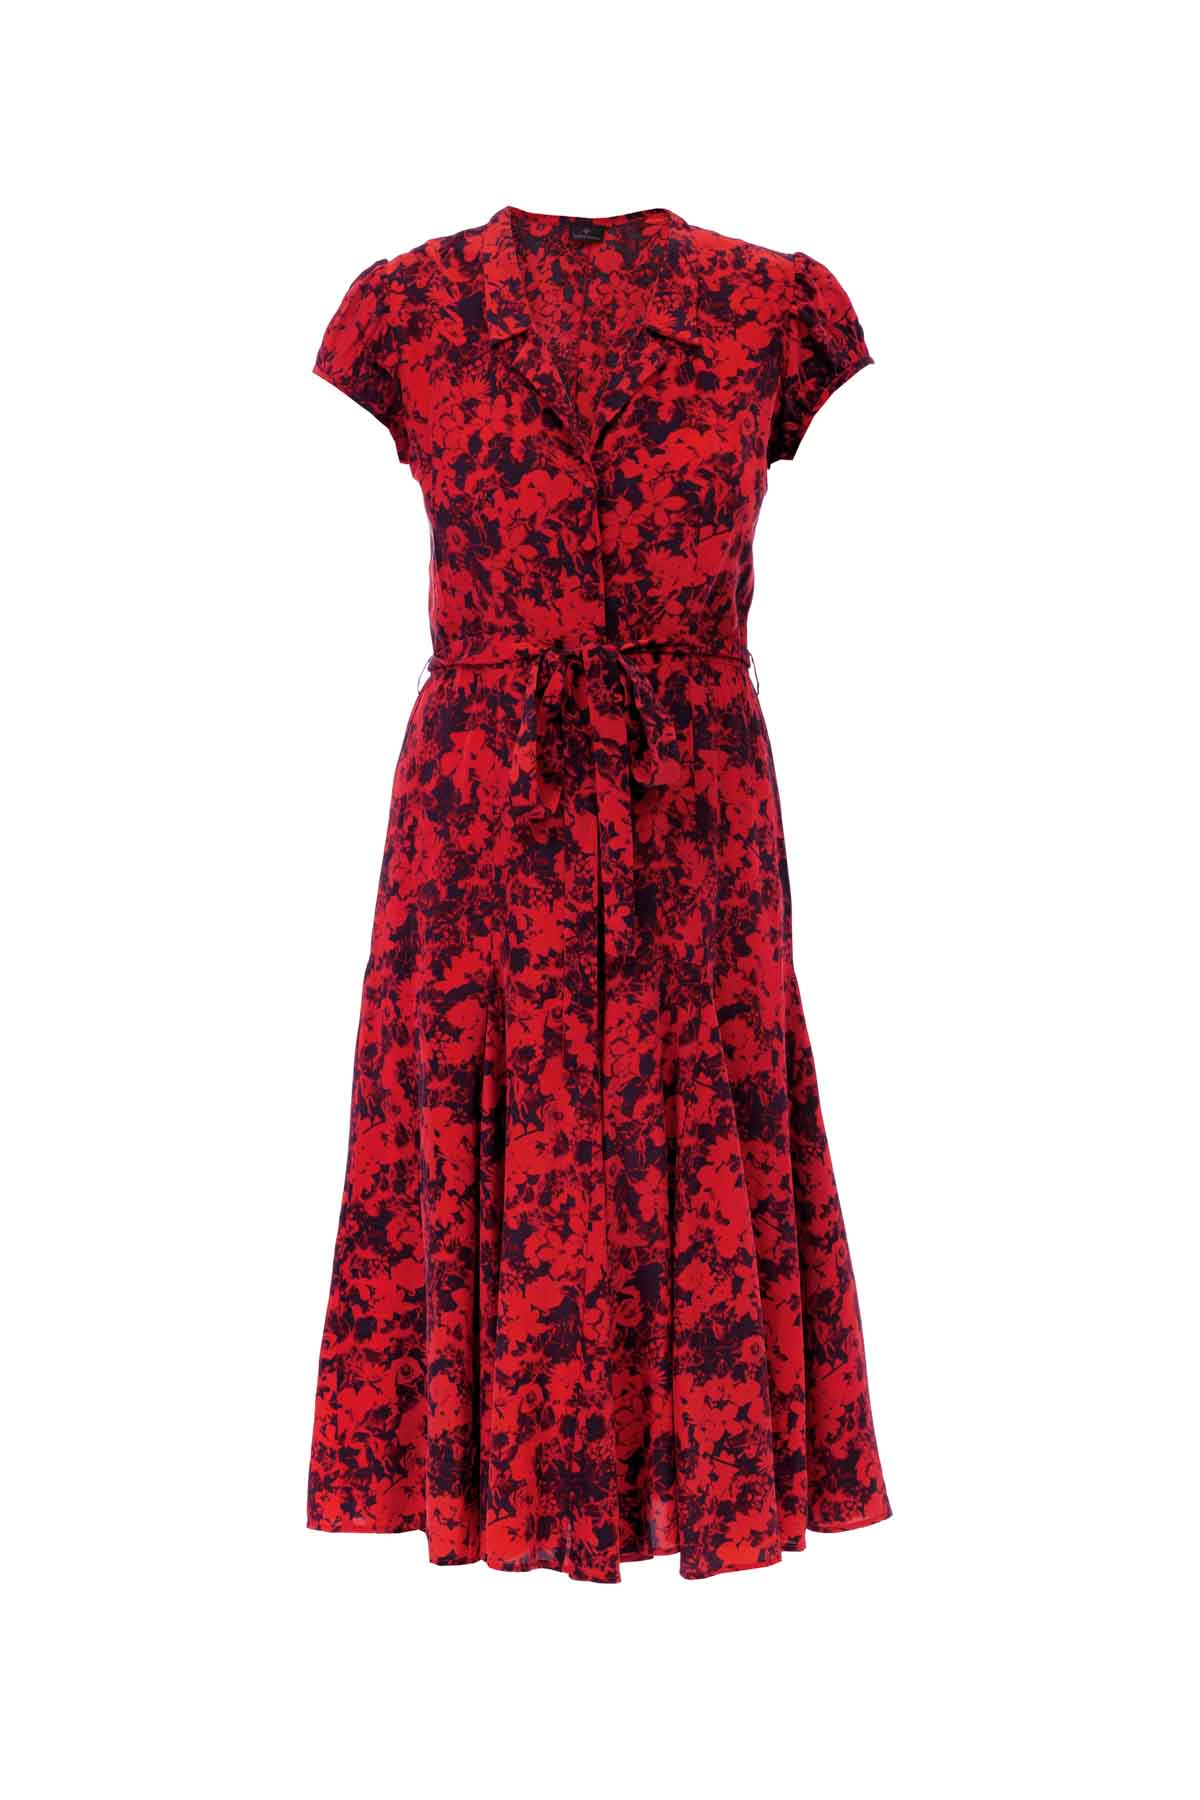 Silk Bugesha Dress - Red Floral